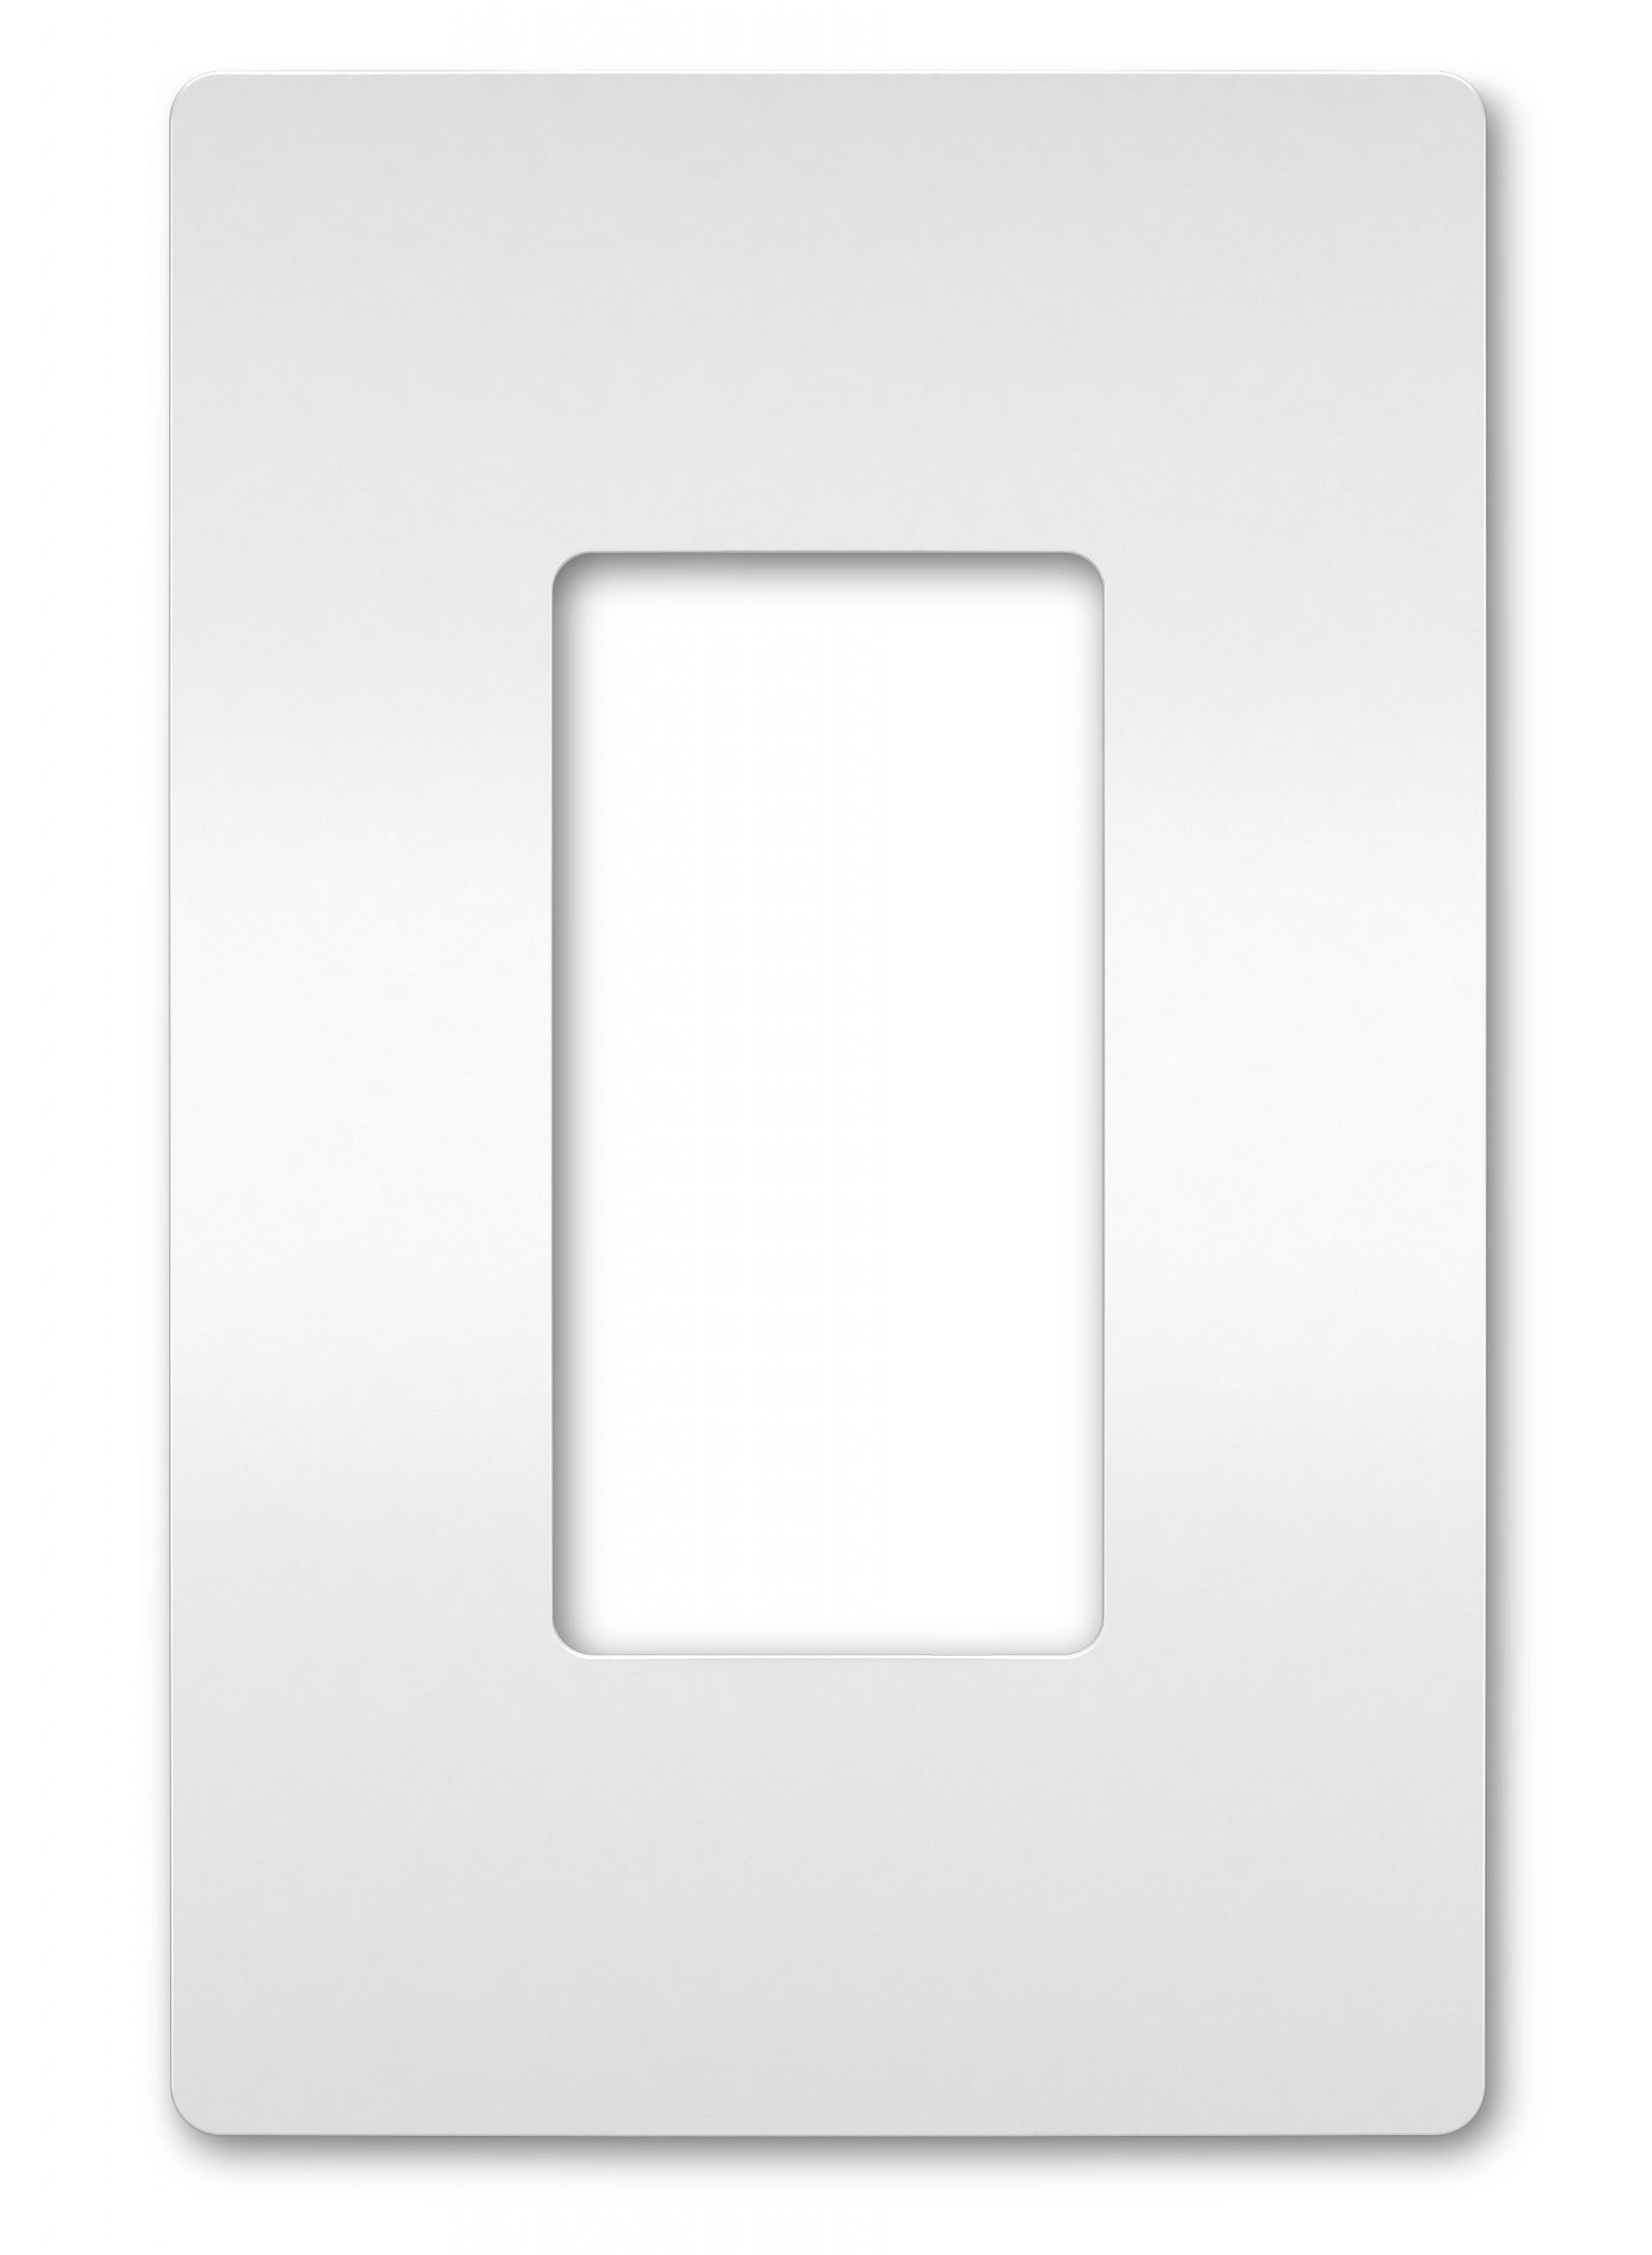 Screwless Wall Plates Screwfix Aspire Stainless Steel scaled